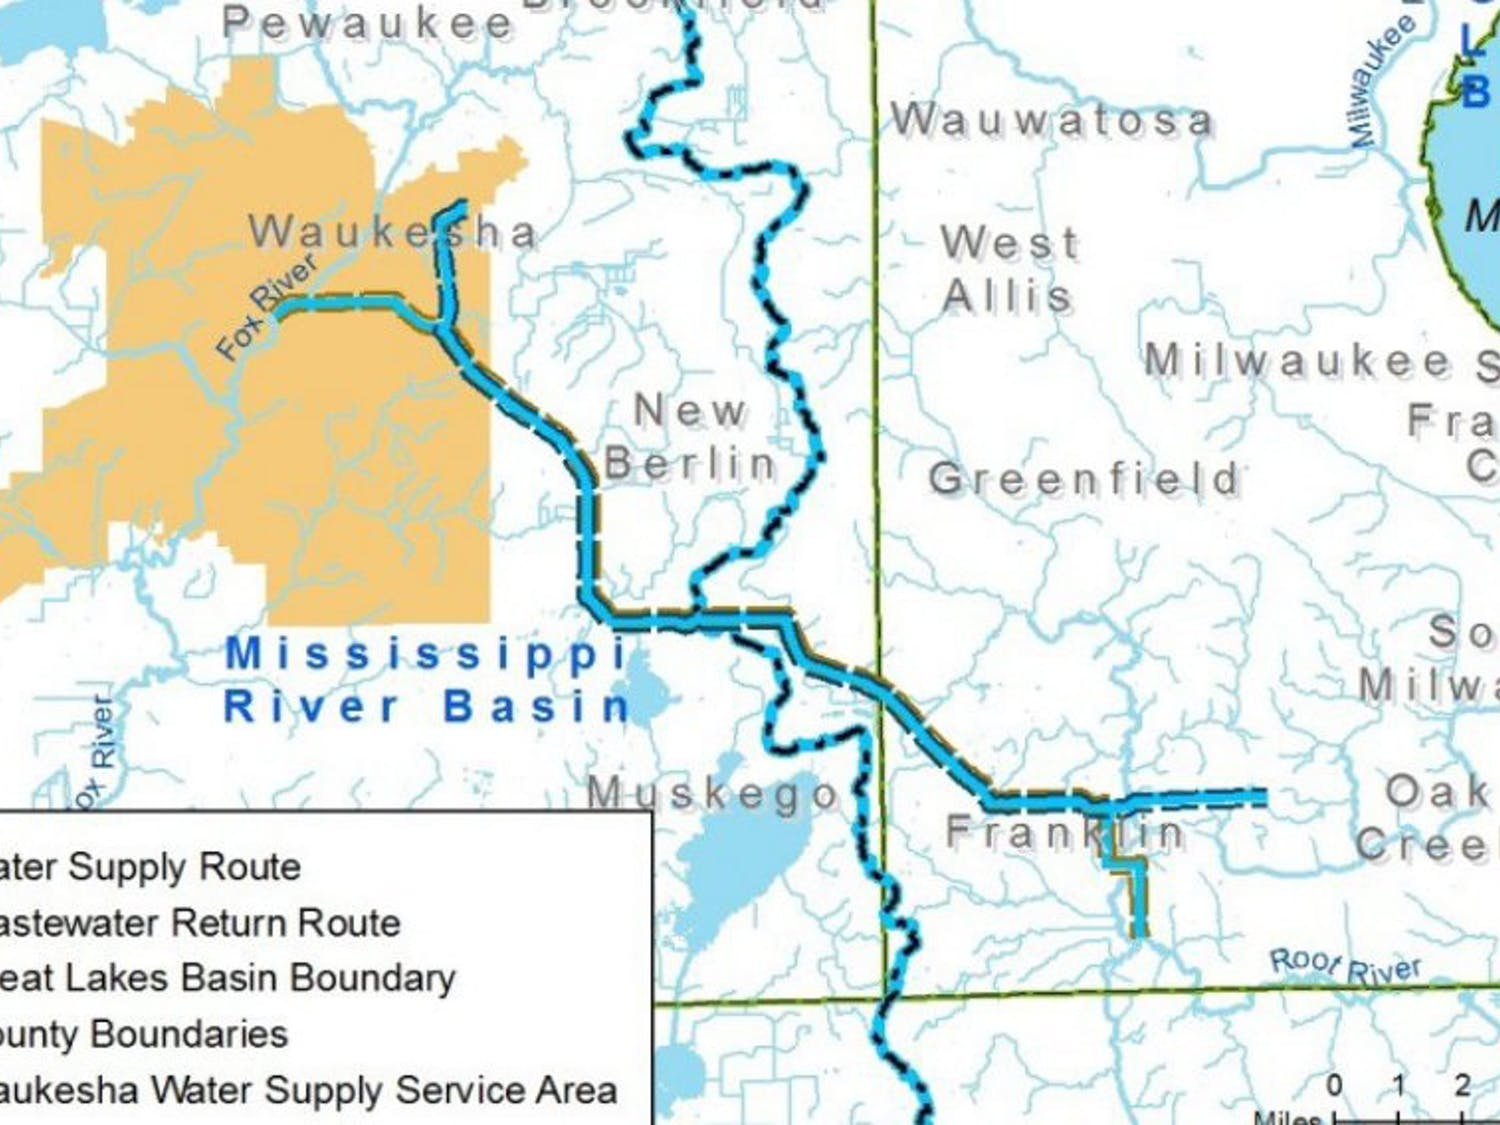 Waukesha is applying for an exemption to pull water from the Great Lakes basin, a move whichhas generated significant controversy.